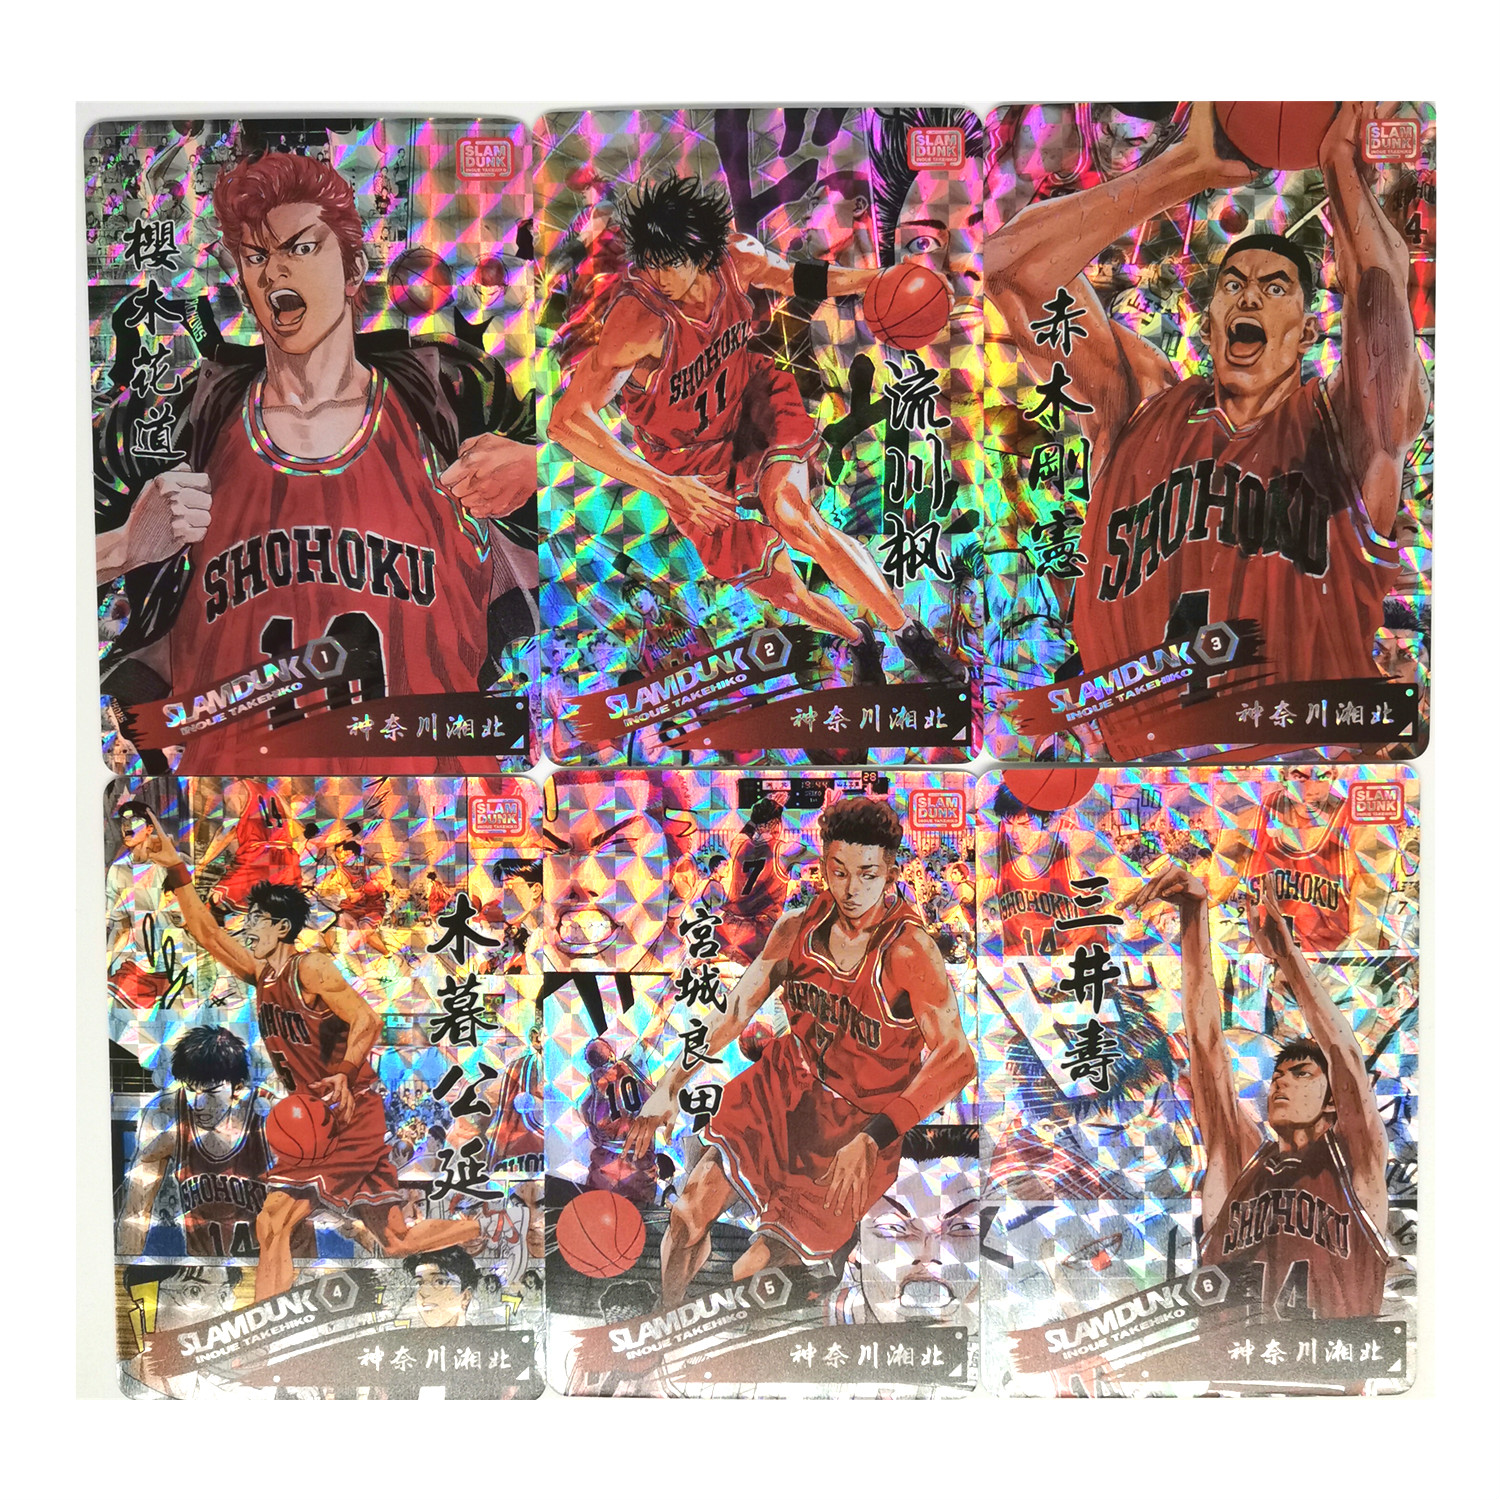 24pcs/set SLAM DUNK Toys Hobbies Hobby Collectibles Game Collection Anime Cards